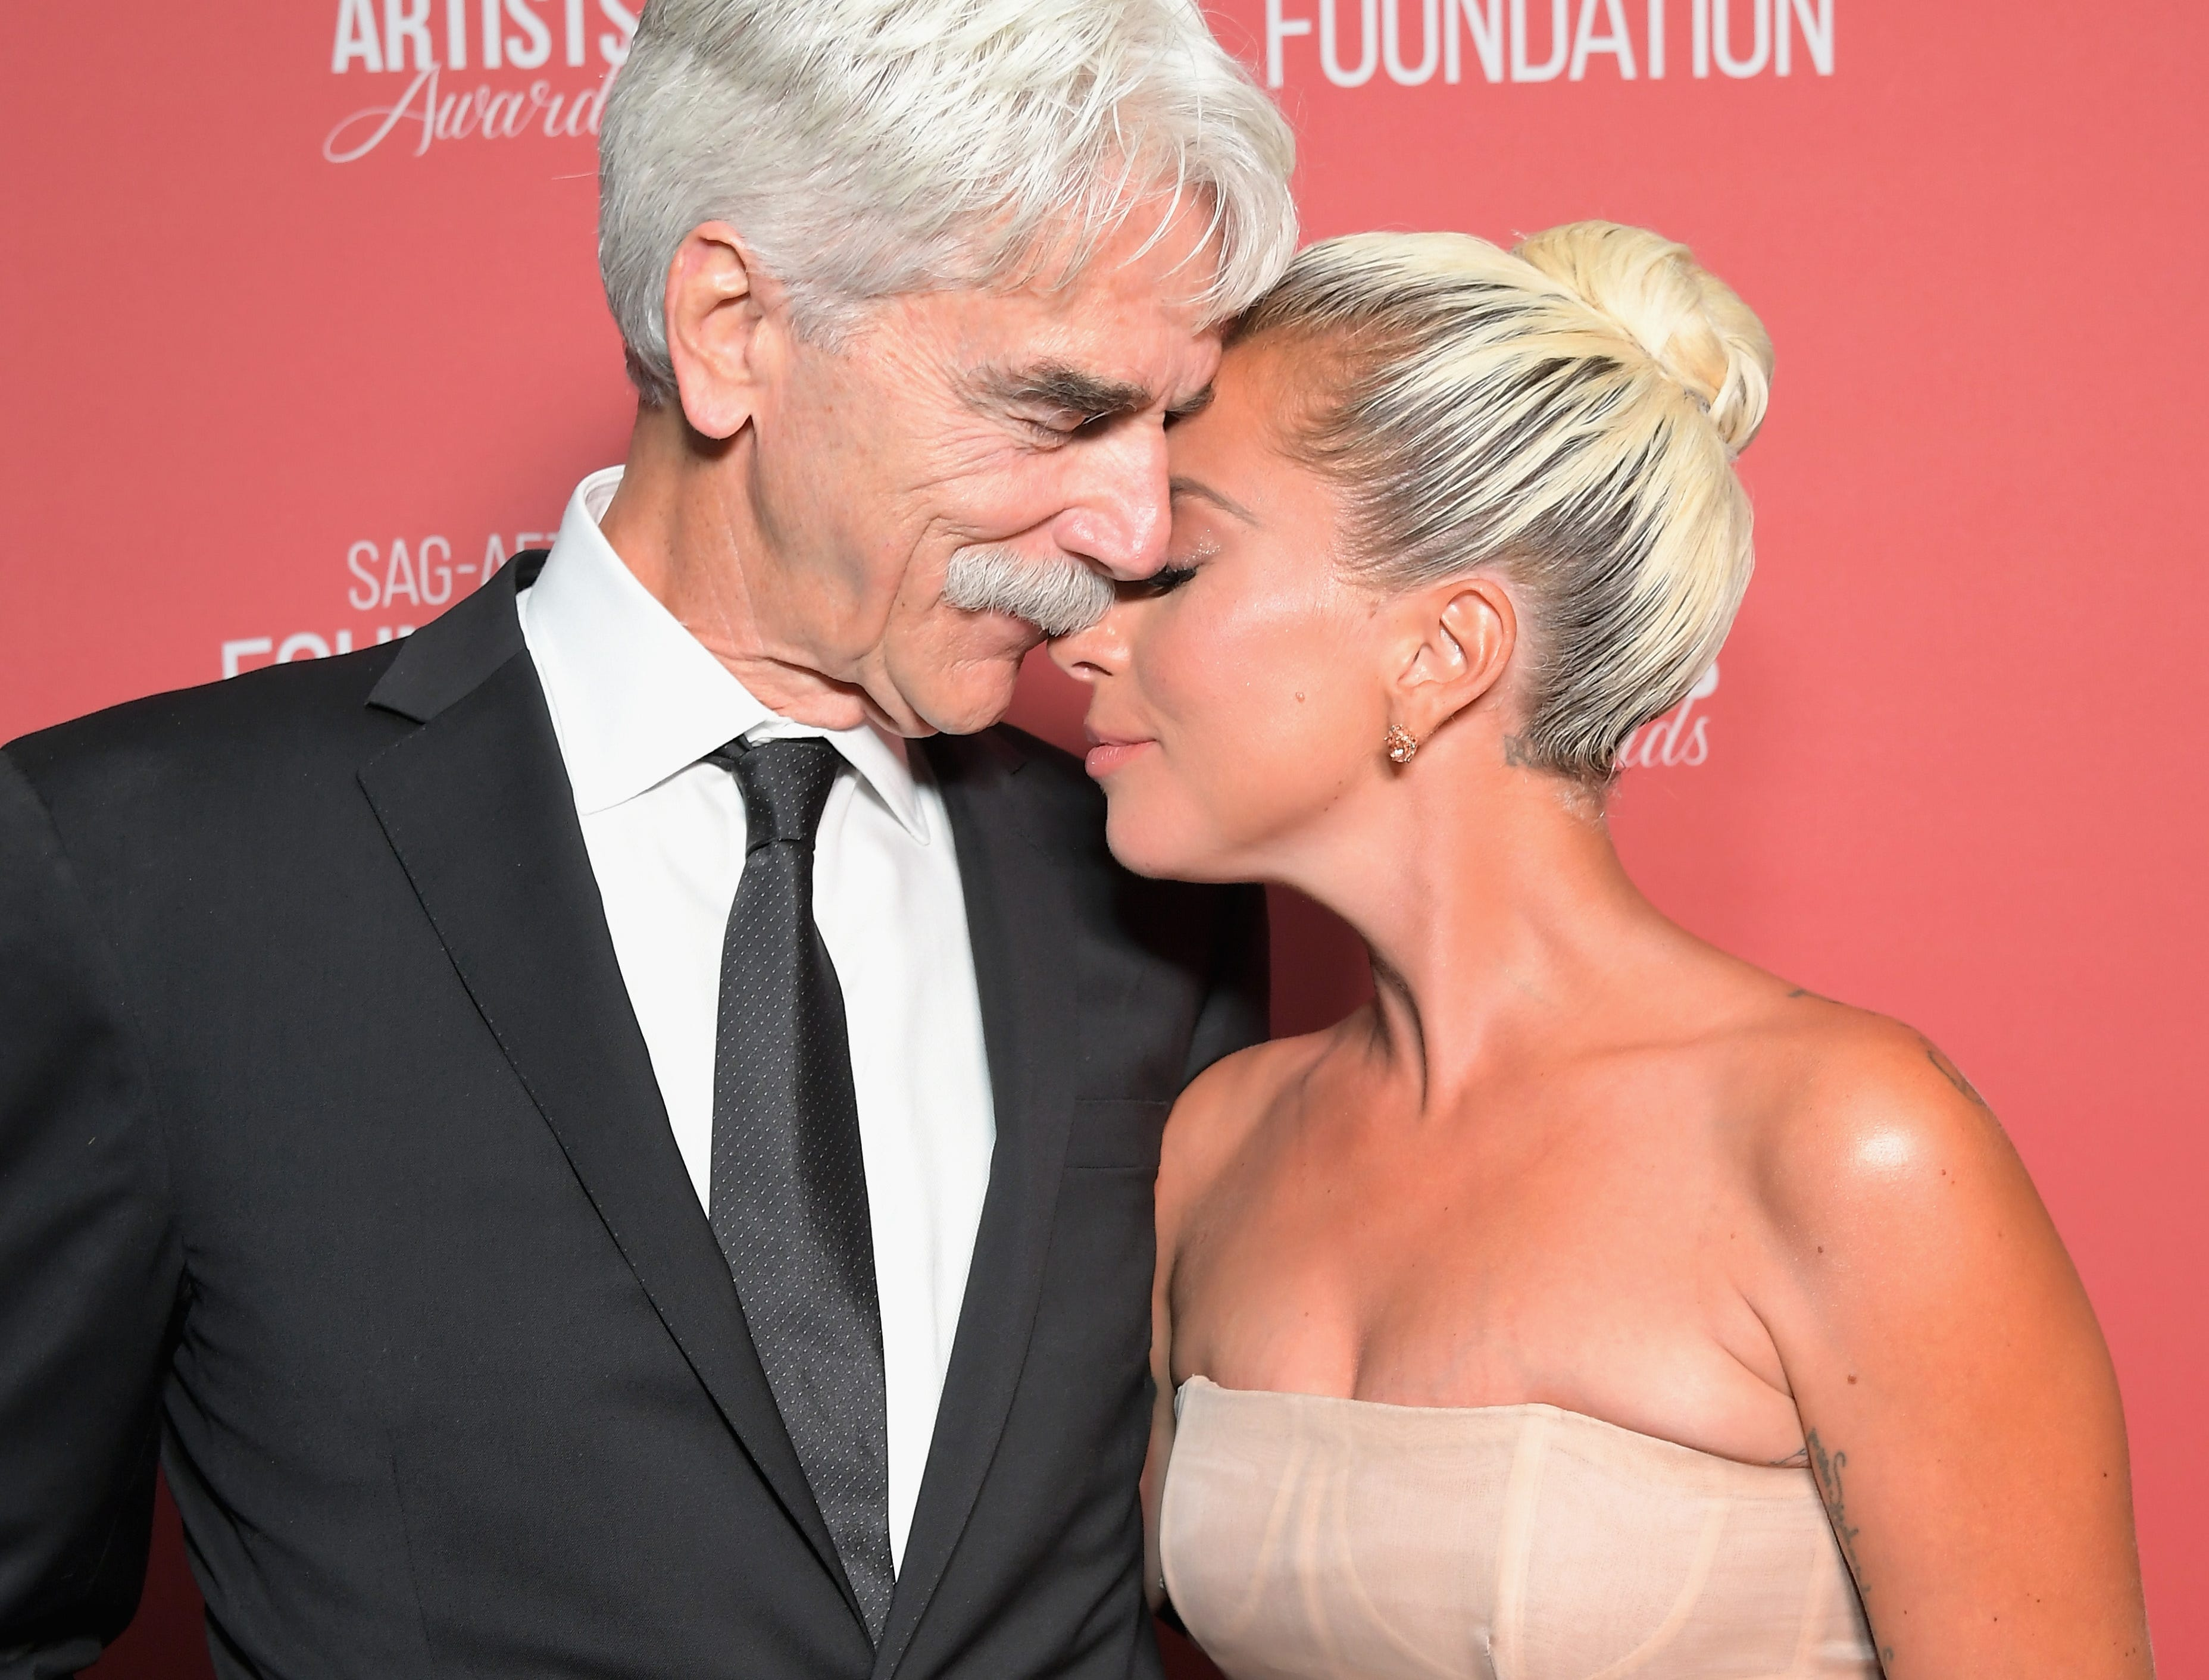 BEVERLY HILLS, CA - NOVEMBER 08:  Sam Elliott and Artists Inspiration Award recipient Lady Gaga attend the SAG-AFTRA Foundation's 3rd Annual Patron of the Artists Awards at the Wallis Annenberg Center for the Performing Arts on November 8, 2018 in Beverly Hills, California.  (Photo by Charley Gallay/Getty Images for SAG-AFTRA Foundation) ORG XMIT: 775247555 ORIG FILE ID: 1059475052